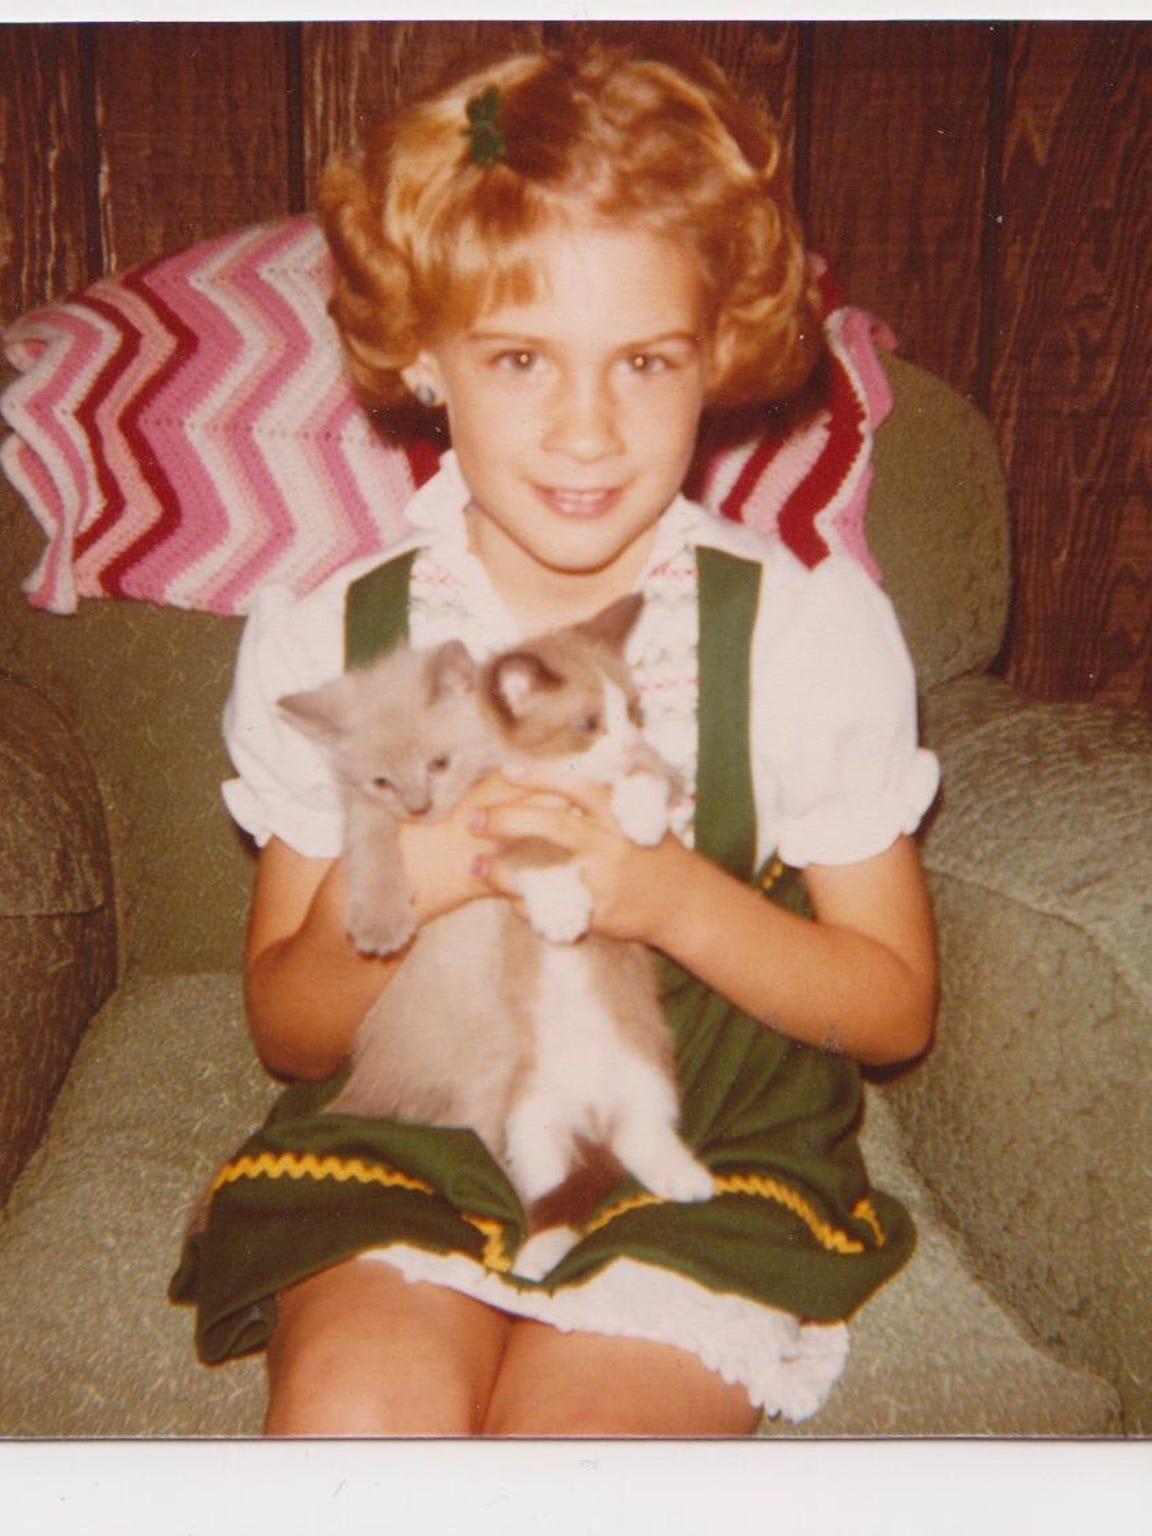 Heidi Wolfe poses for a picture with two kittens. Year unknown.